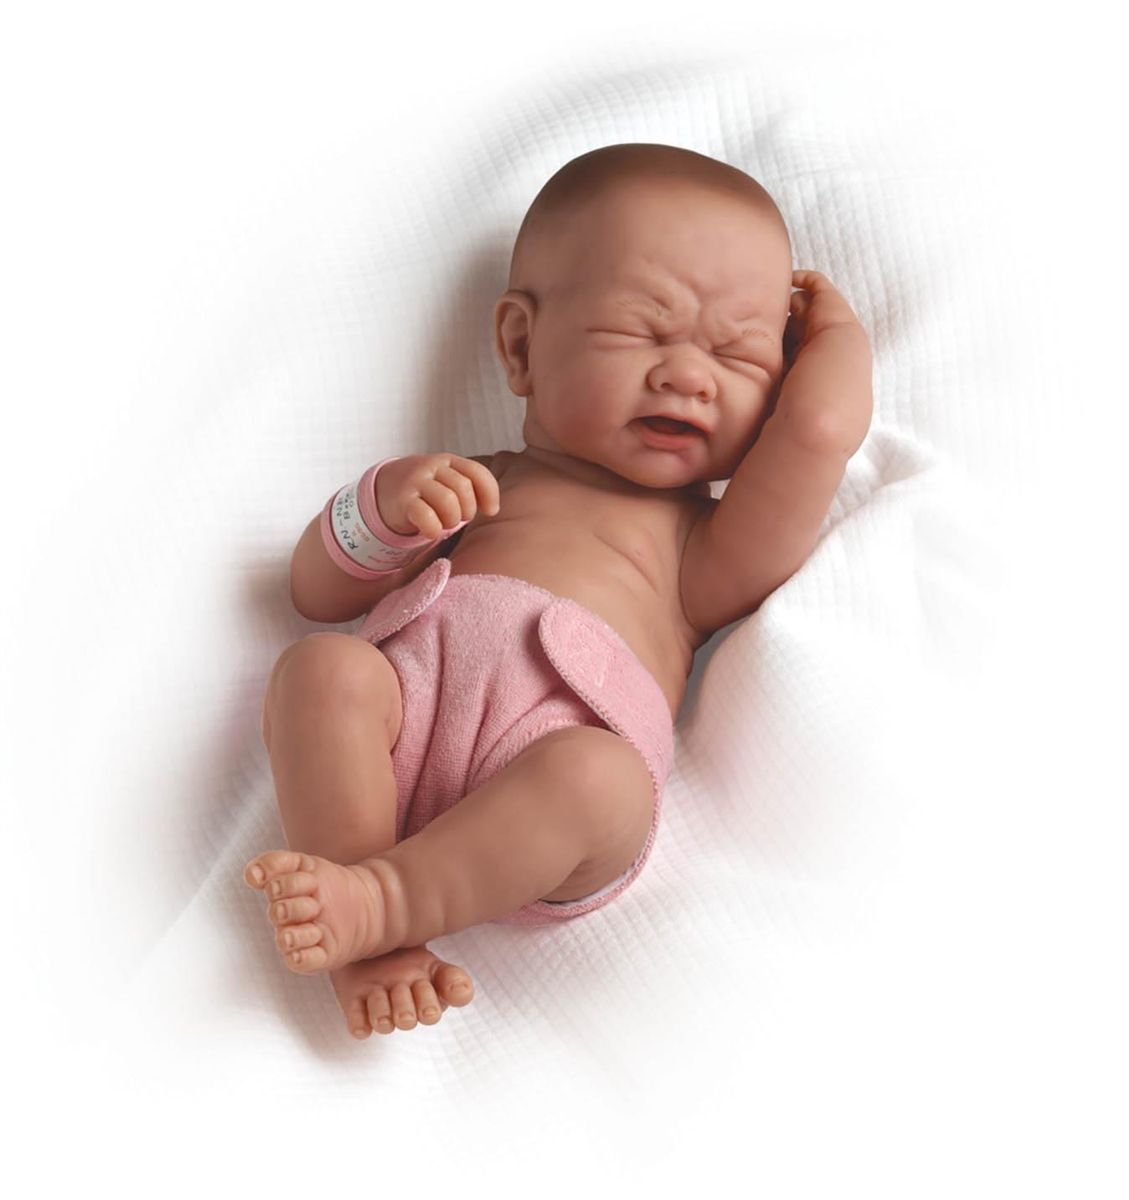 Crying Newborn Baby Doll With Pink Diaper And Realistic Face Baby Dolls Baby Dolls For Sale Boy Baby Doll